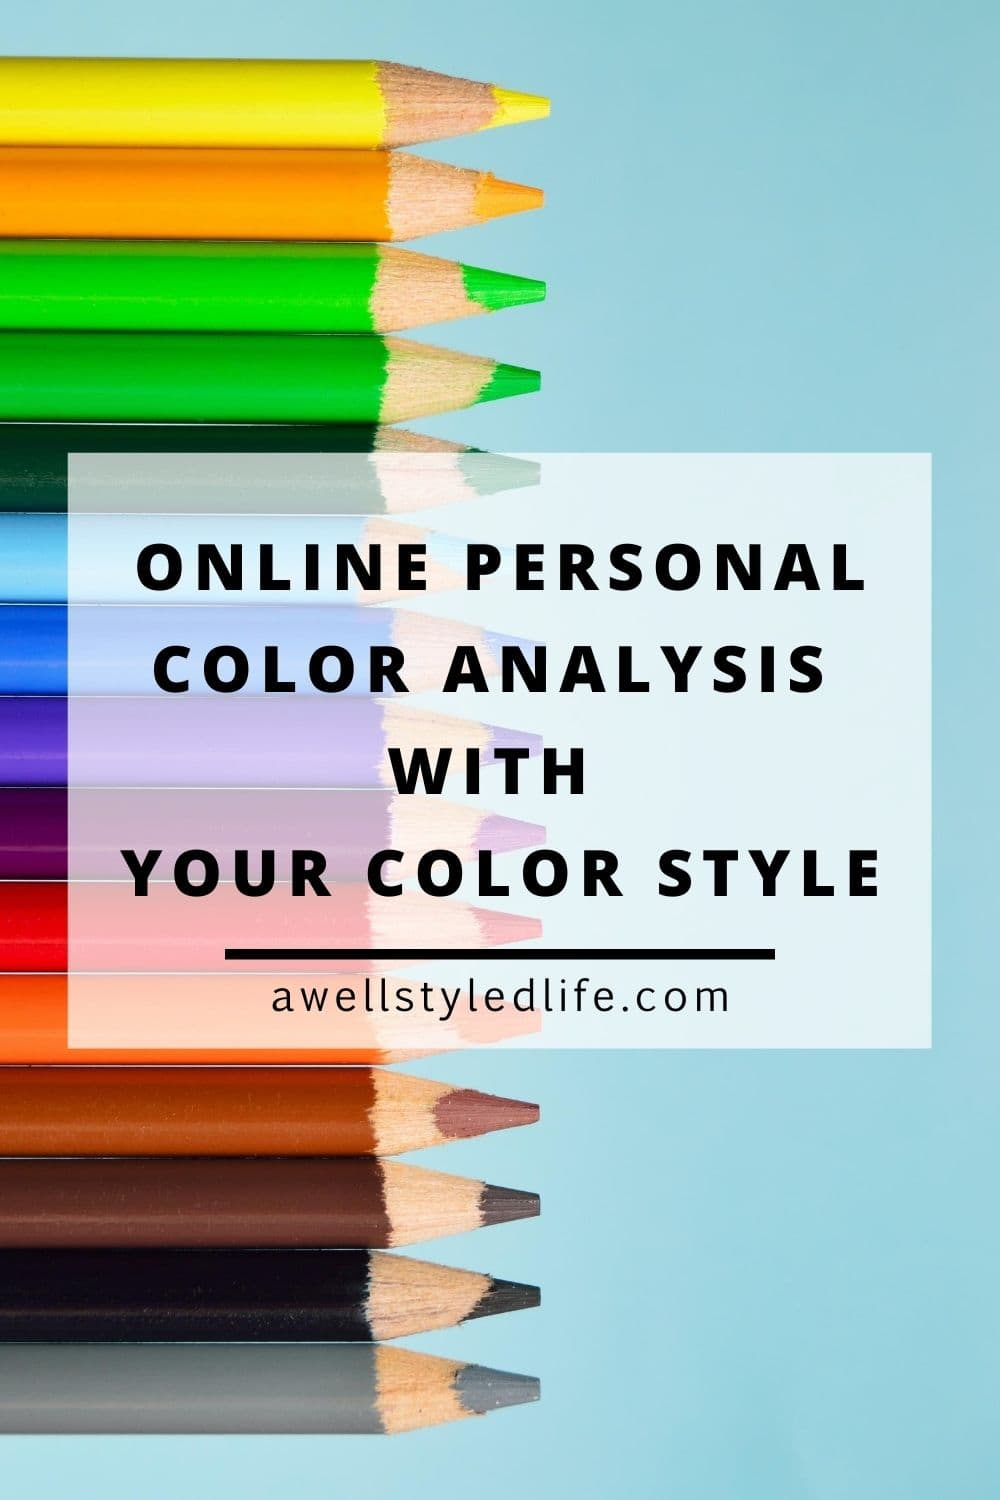 online personal color analysis with your color style